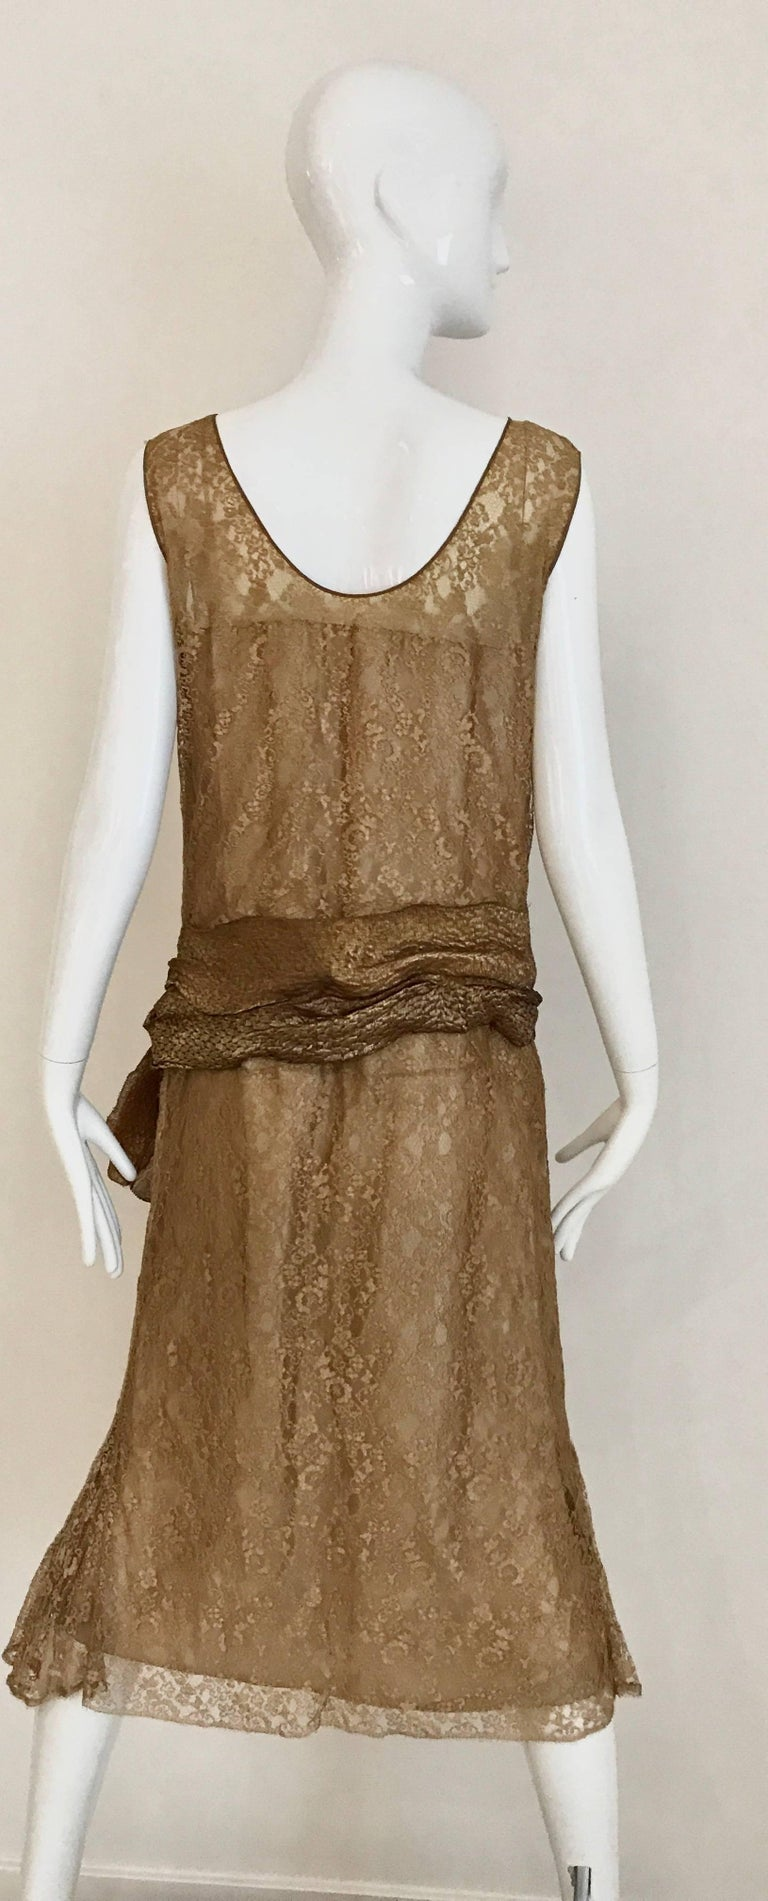 1920s Mocha Metallic Lace Flapper Dress In Good Condition For Sale In Beverly Hills, CA